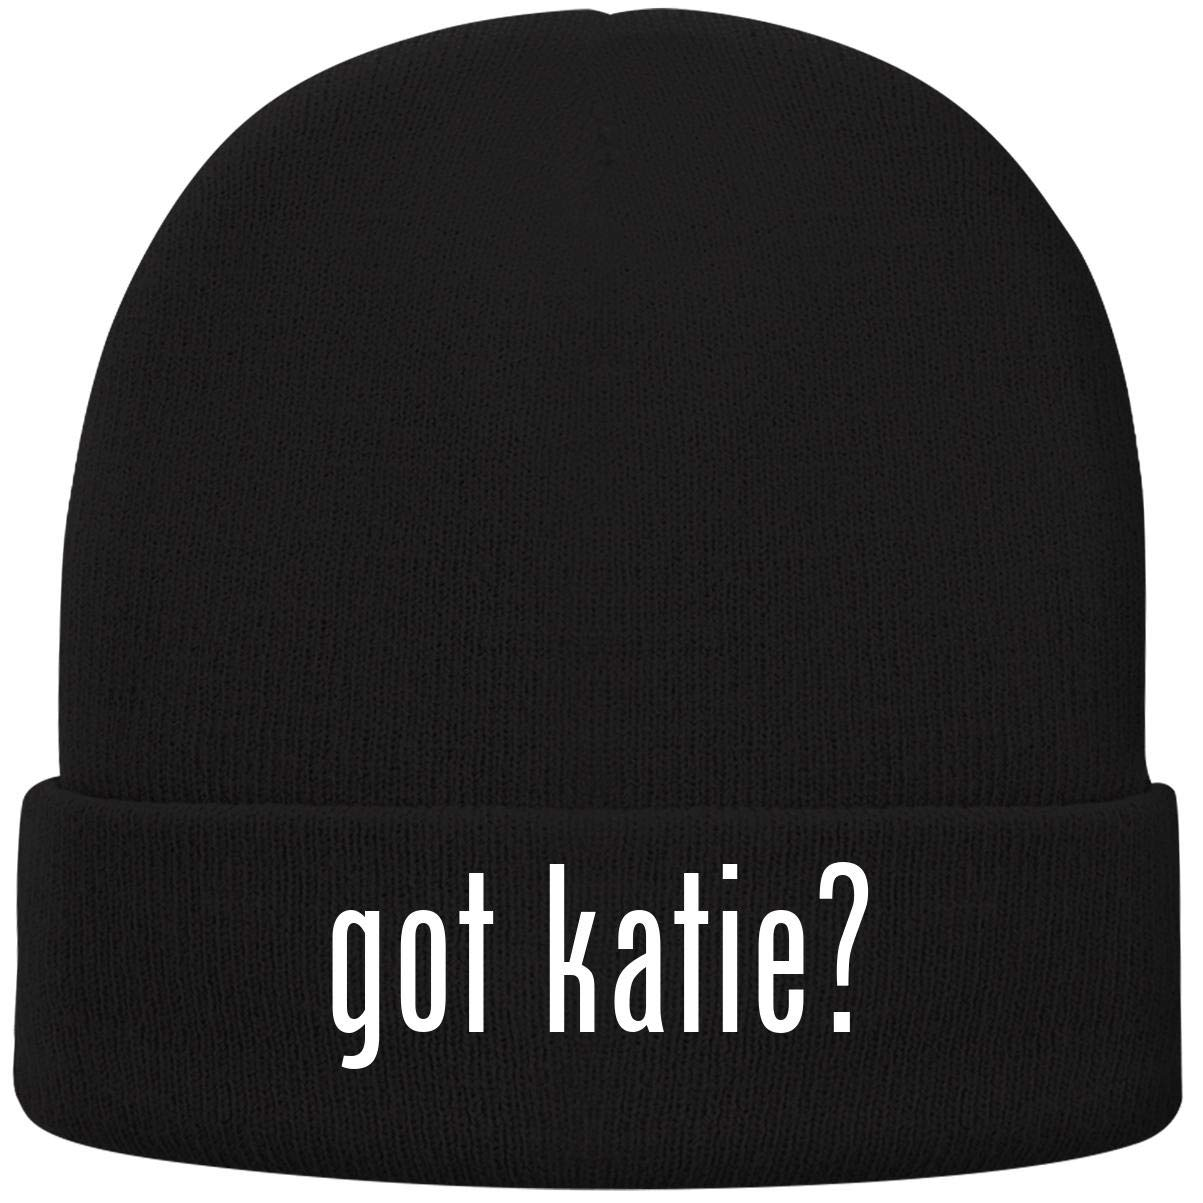 One Legging it Around got Katie? - Soft Adult Beanie Cap